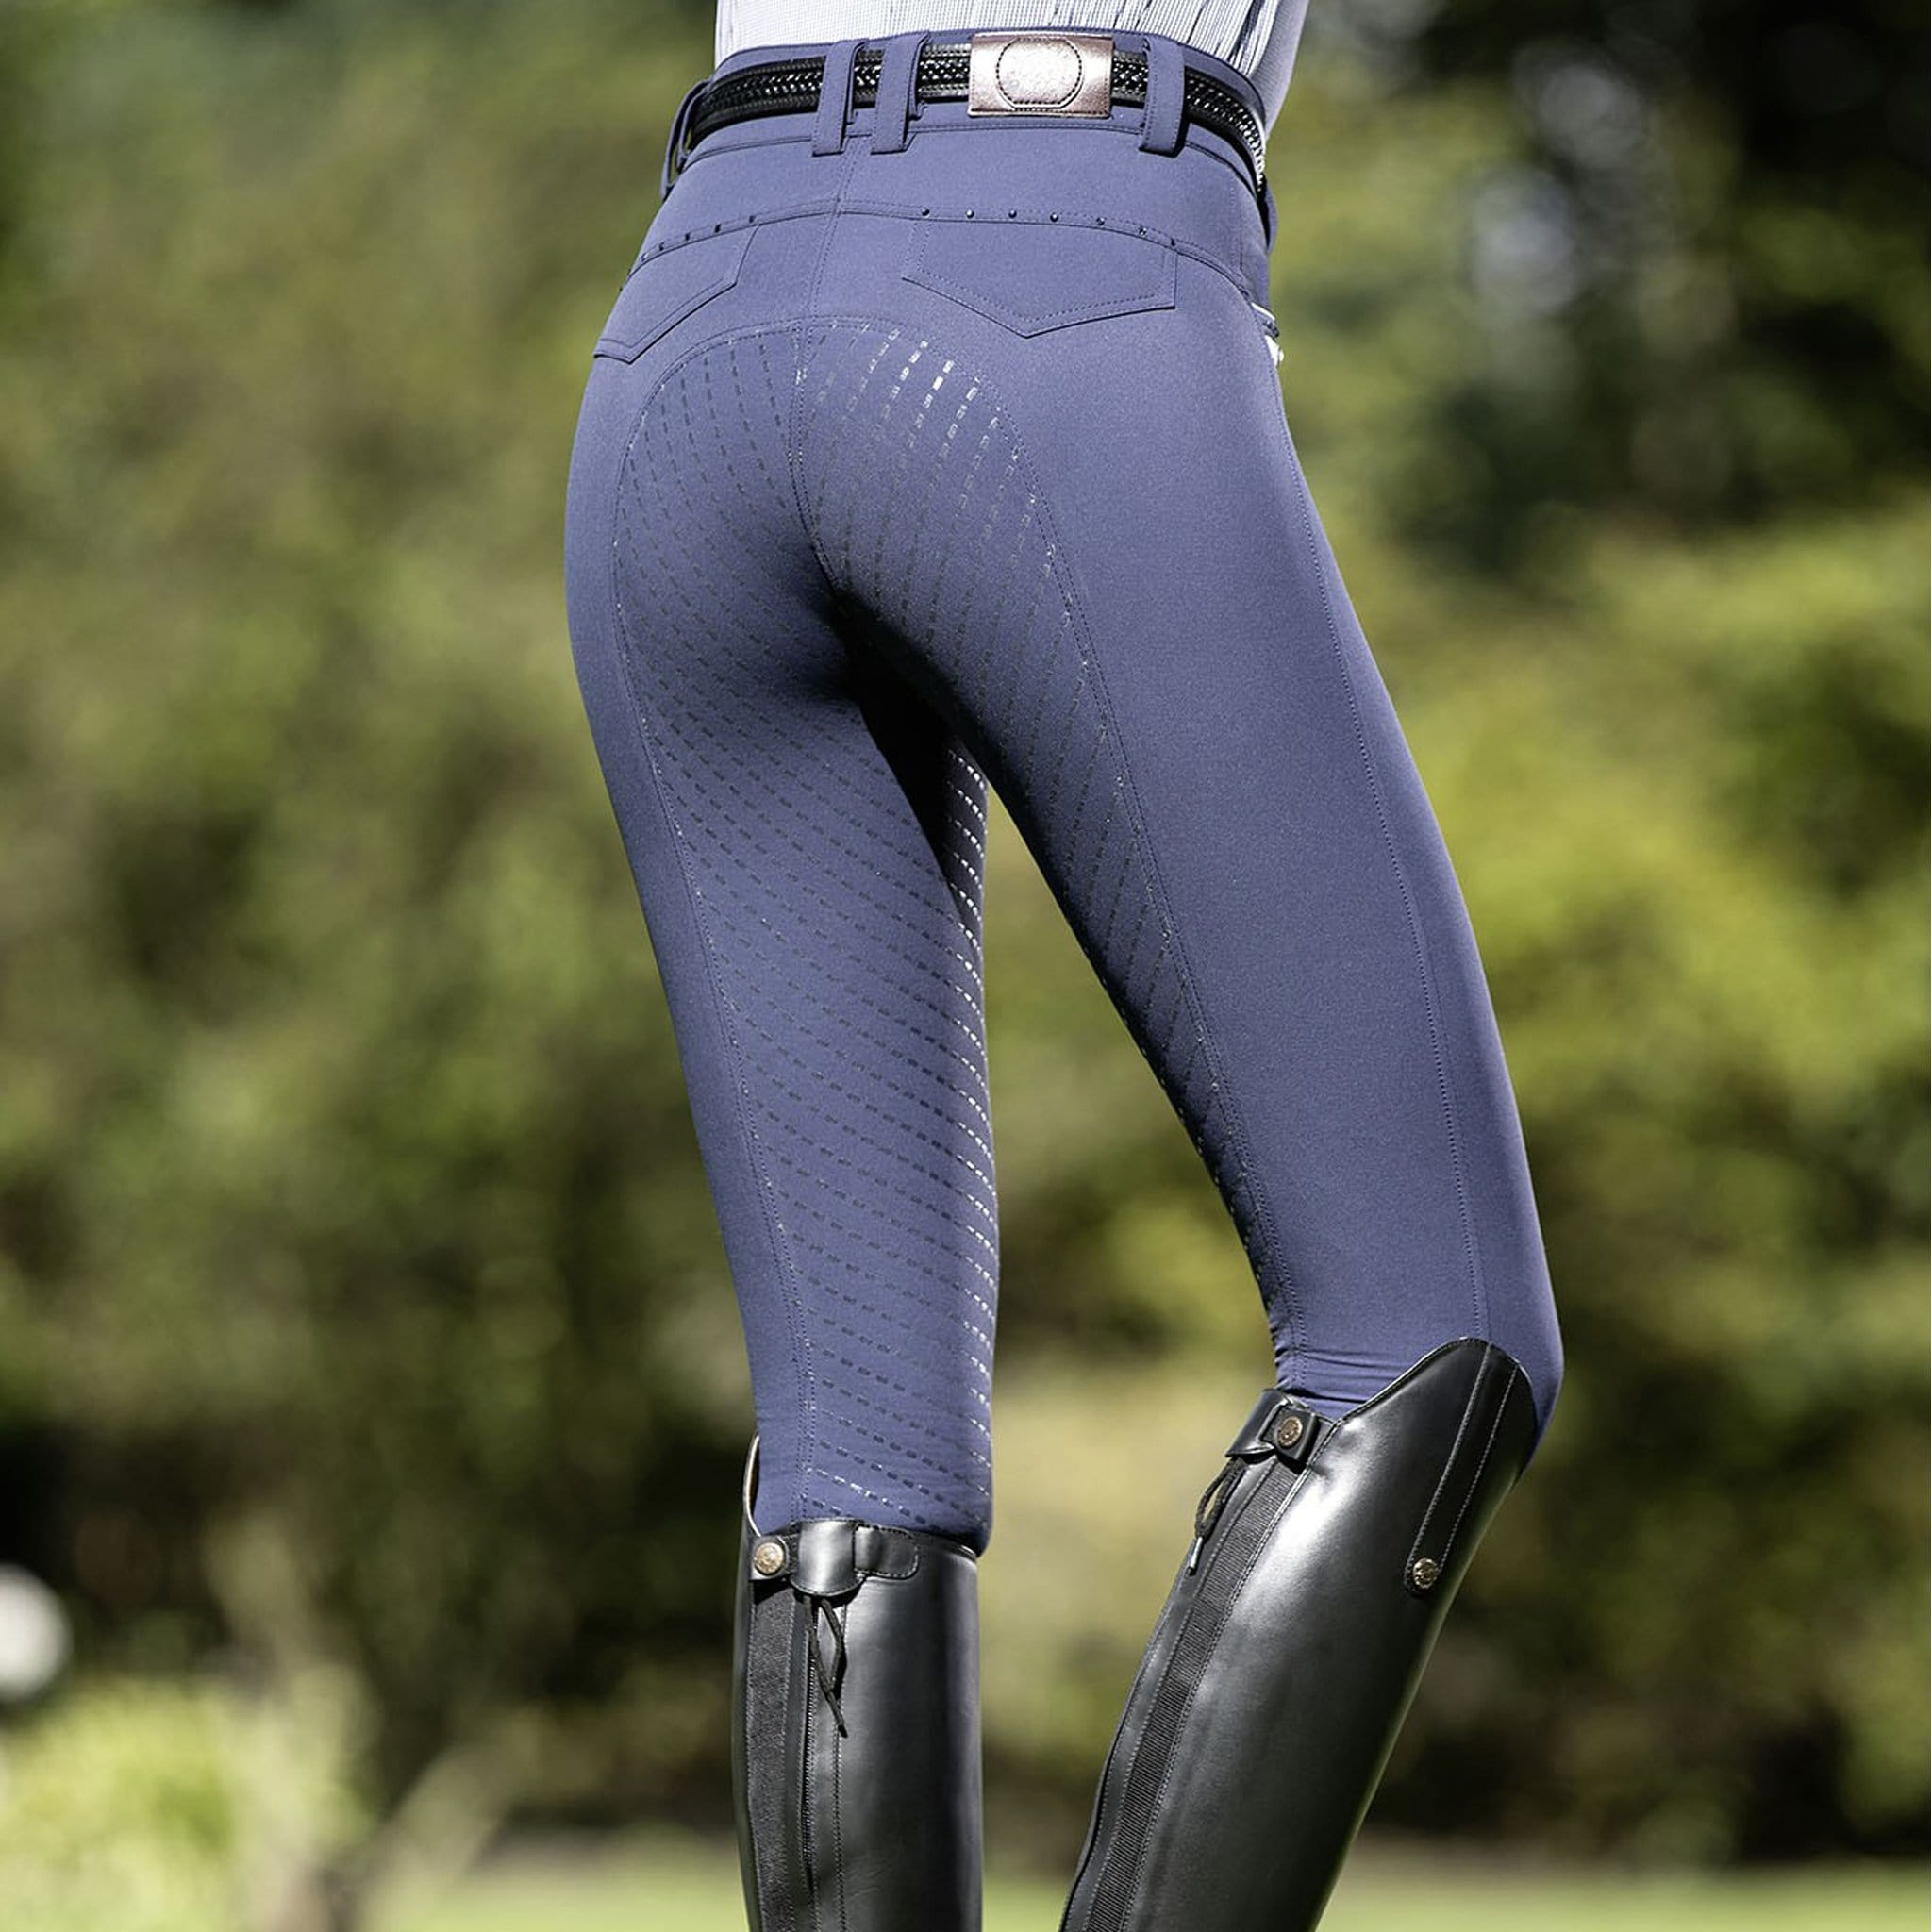 HKM Lauria Garrelli Santa Rosa Silicone Full Seat Breeches Deep Blue Summer Lifestyle Rear View 9556/6900